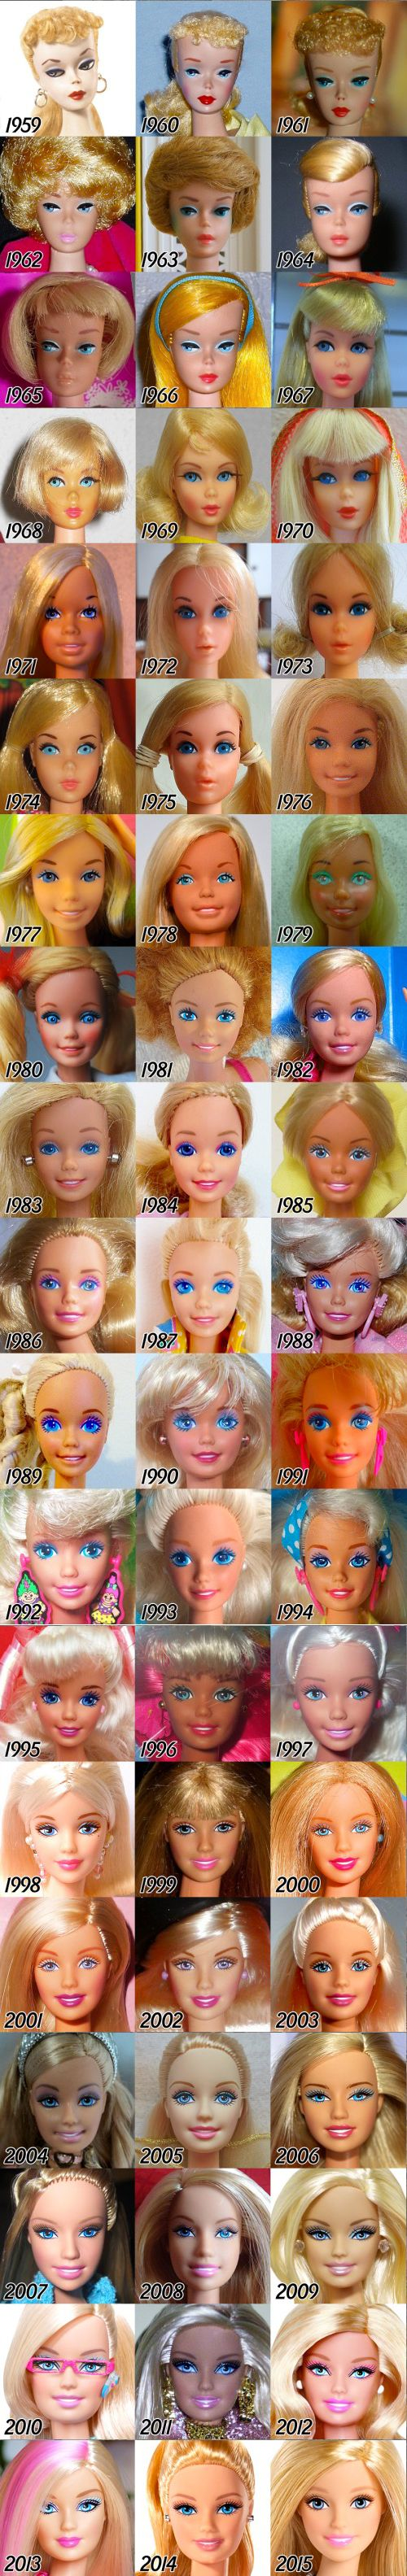 Barbie evolution via http://tenaflyviper.tumblr.com/post/125639467465/i-was-curious-as-to-exactly-how-barbies-face-has